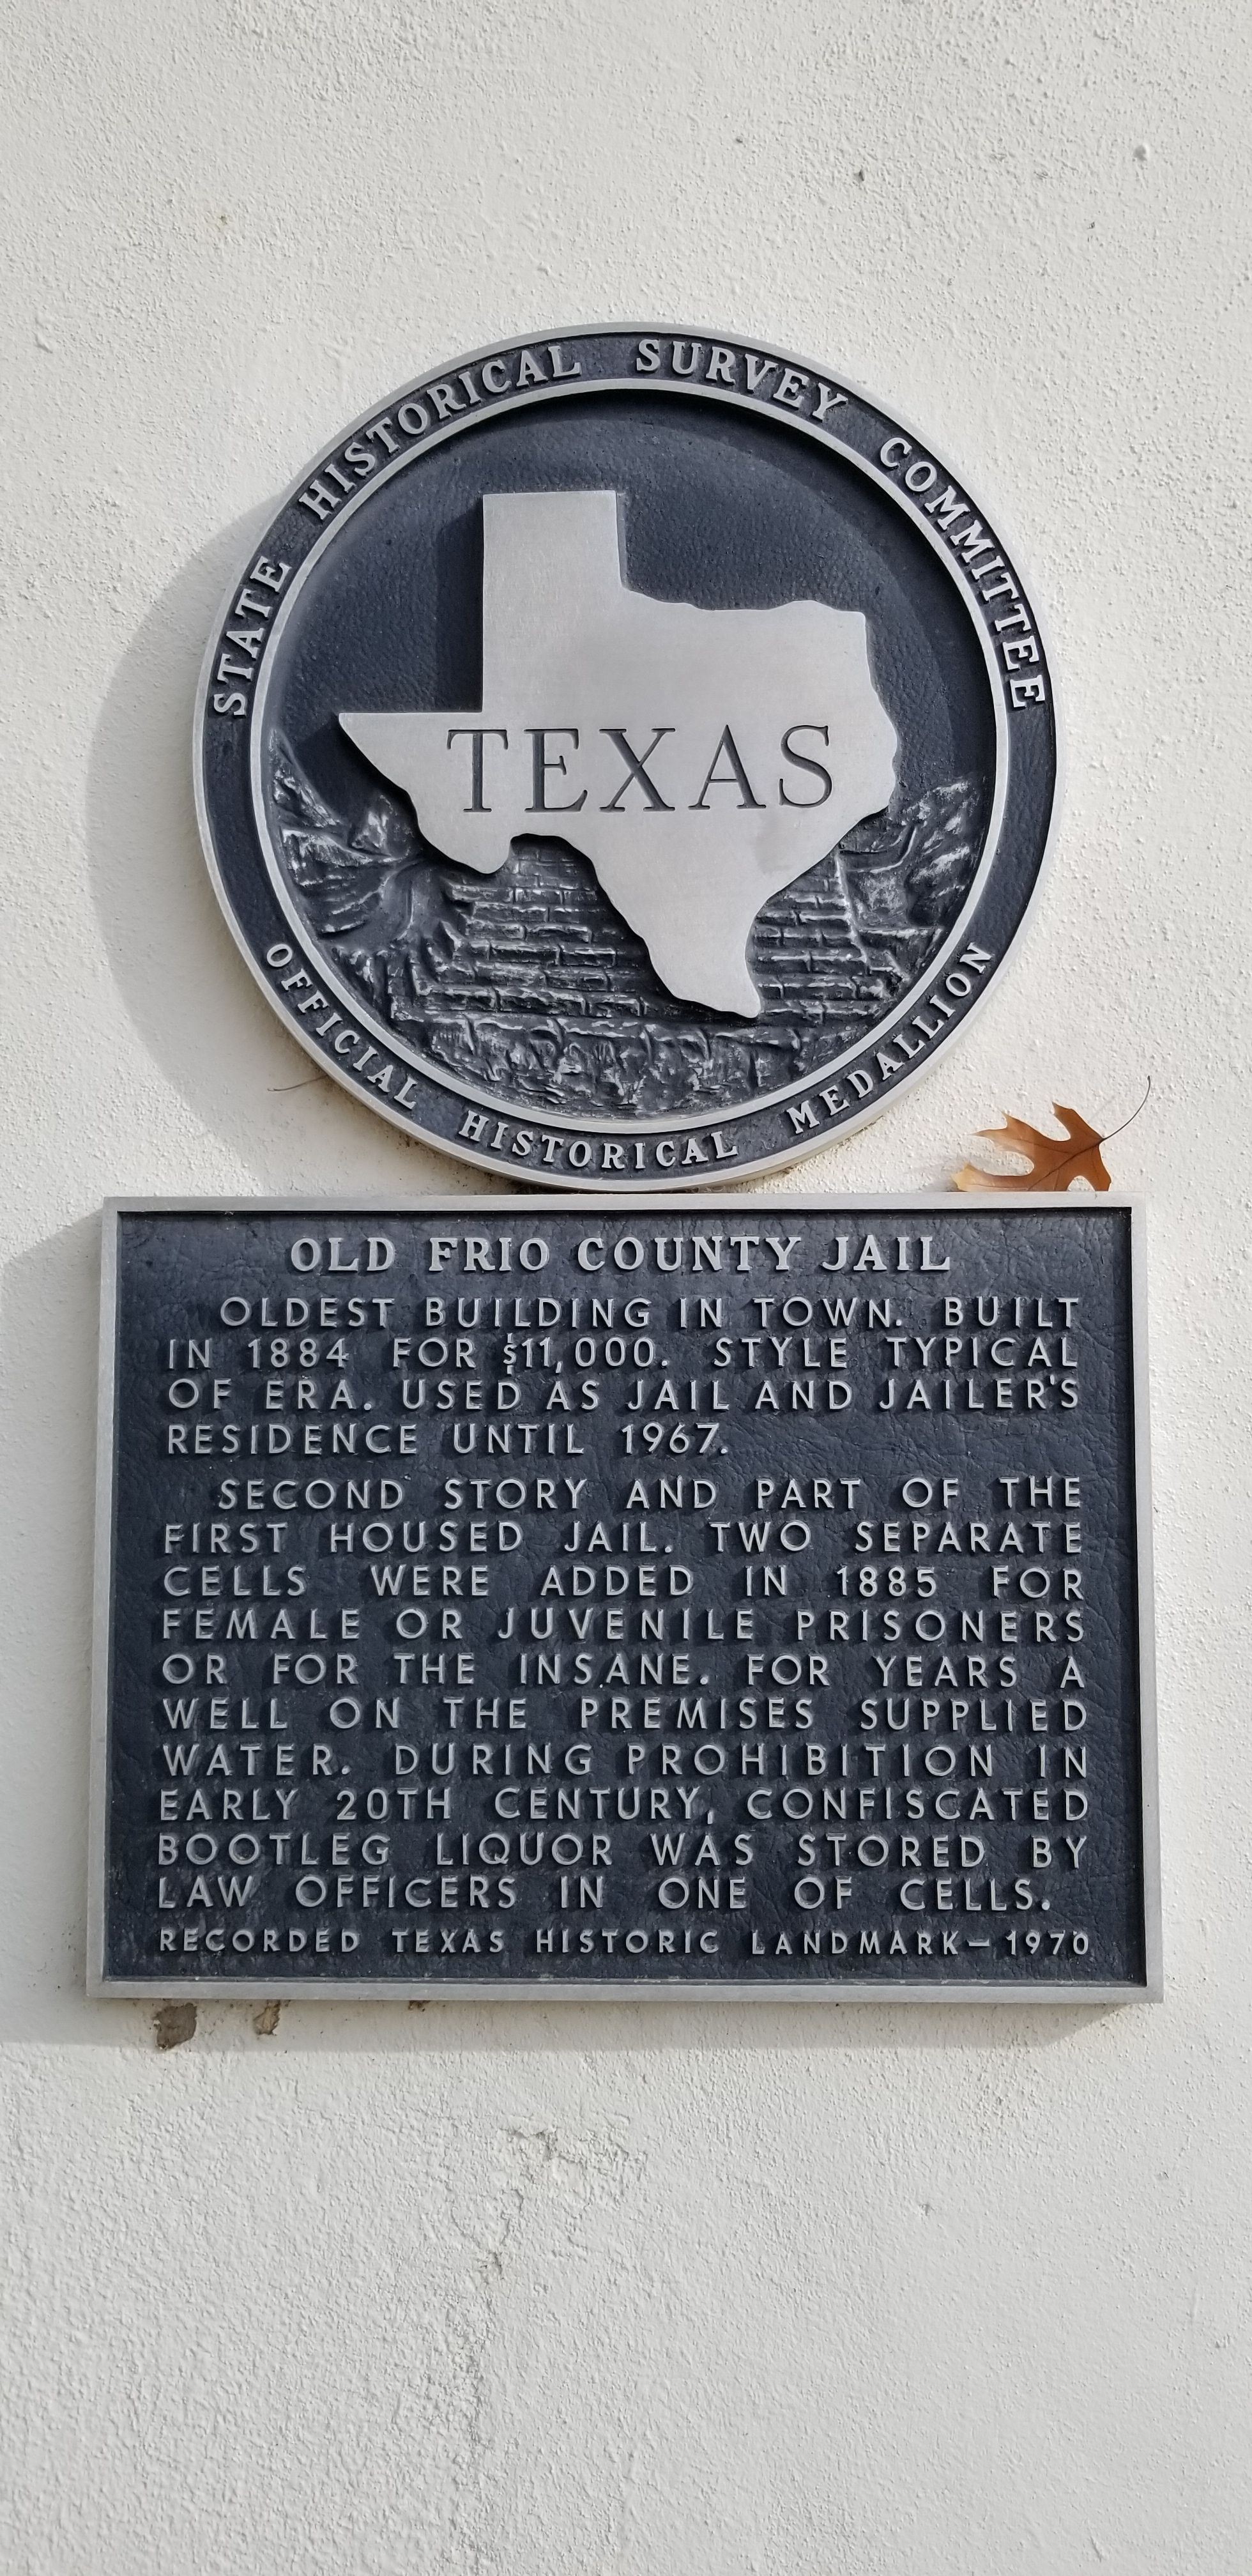 Old Frio County Jail Marker